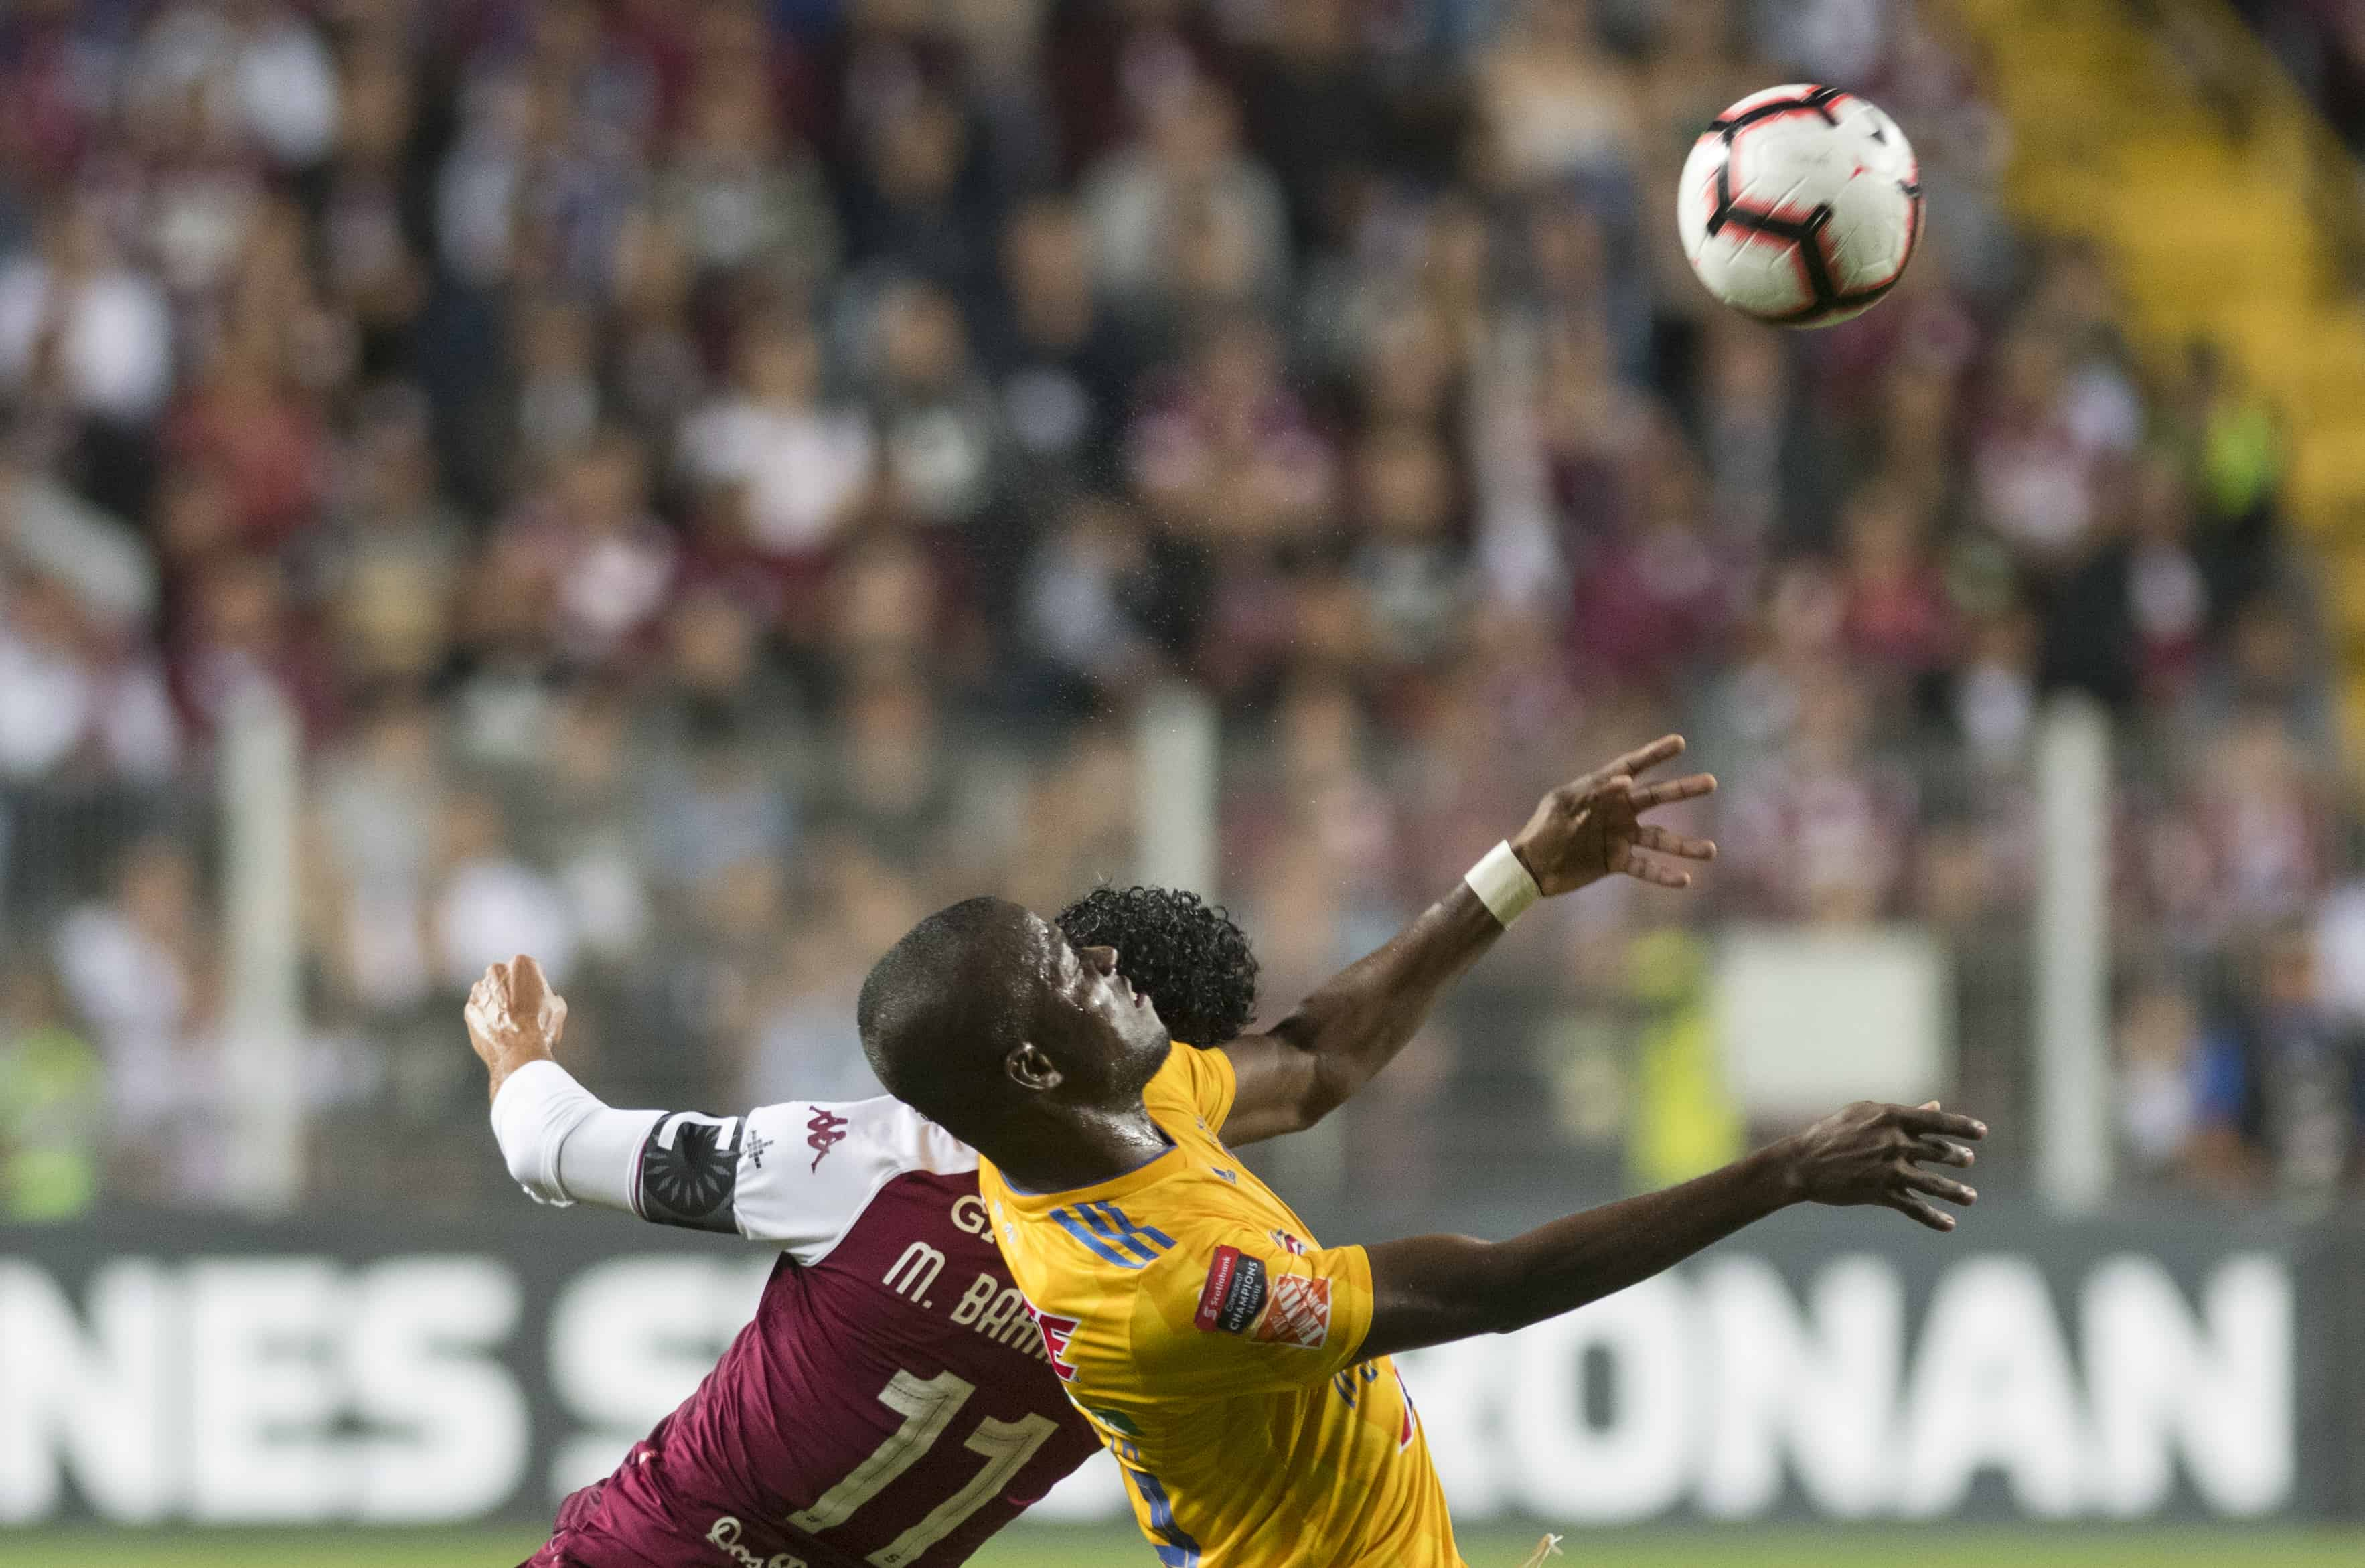 Tigres Saprissa Defeats Mexico S Tigres Uanl Behind Venegas Goal The